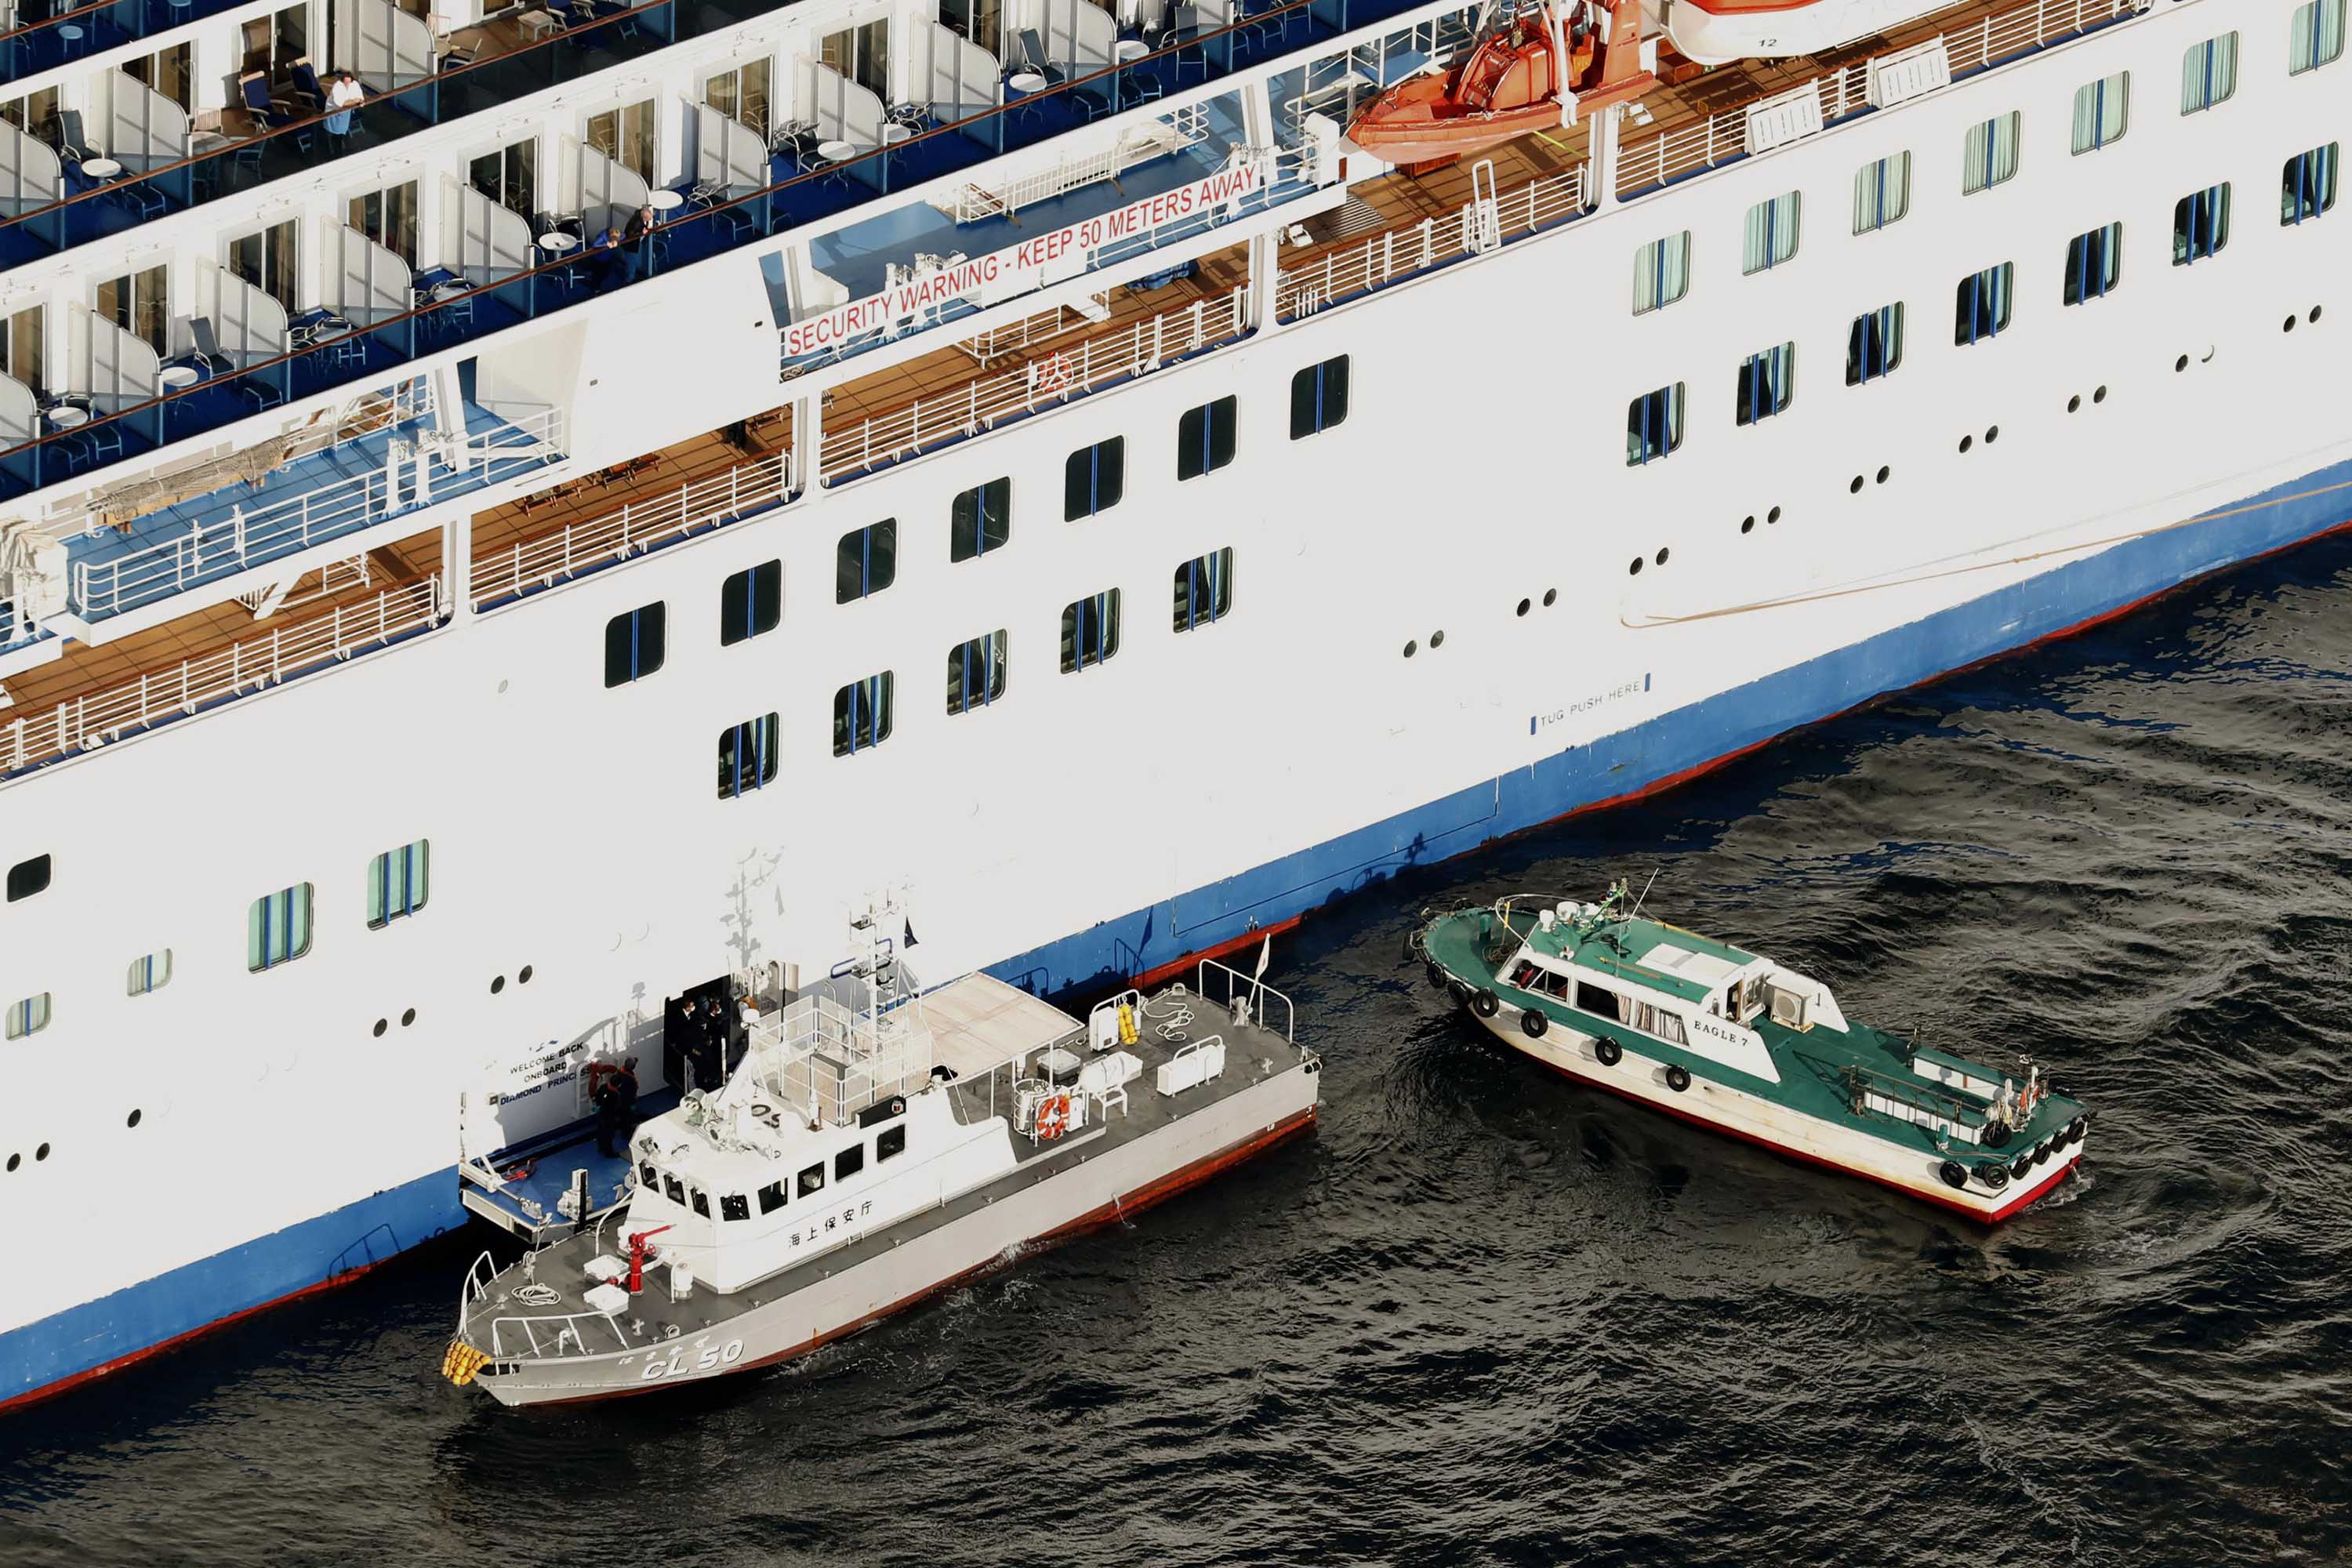 A Japanese Coast Guard patrol boat is brought alongside the Diamond Princess cruise ship to transport passengers who have tested positive for coronavirus to hospitals in Yokohama, Japan on Wednesday.